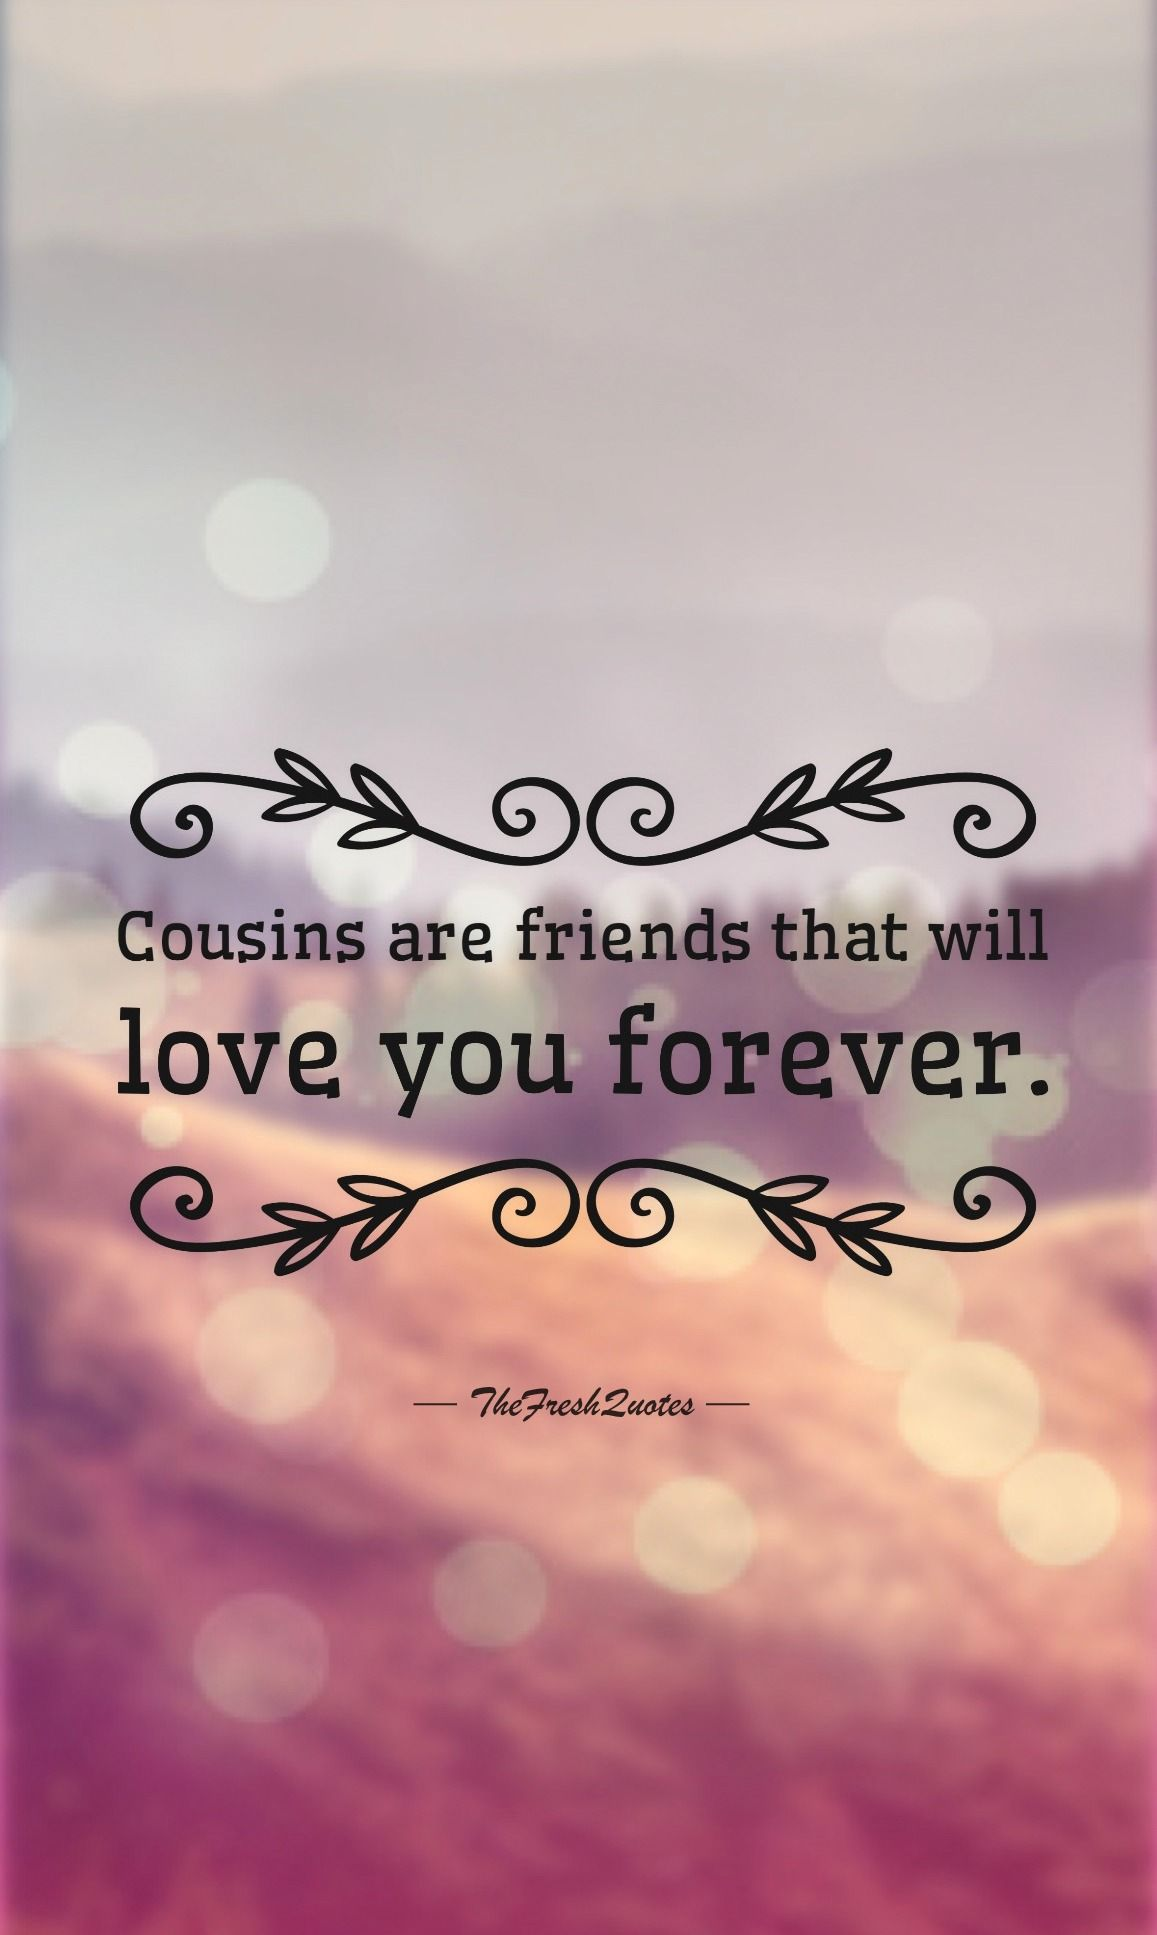 40 Cute And Funny Cousins Quotes With Images Quotes Pinterest